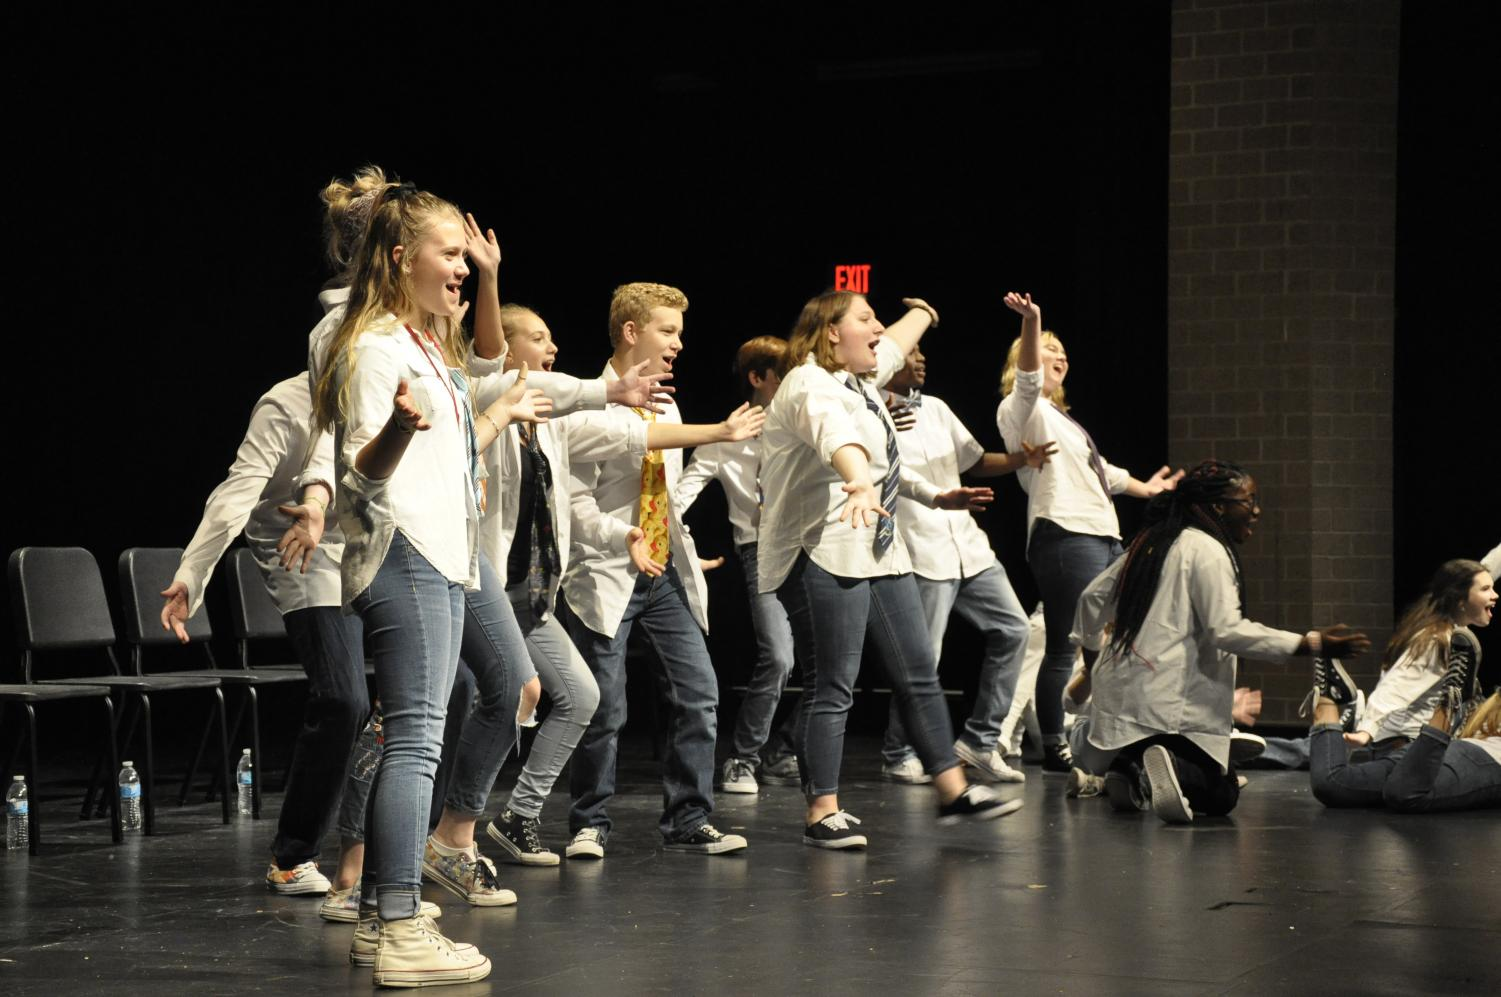 Students perform at last year's improv show. This year's auditions for Mission Improvable took place on Wednesday, Aug 21.